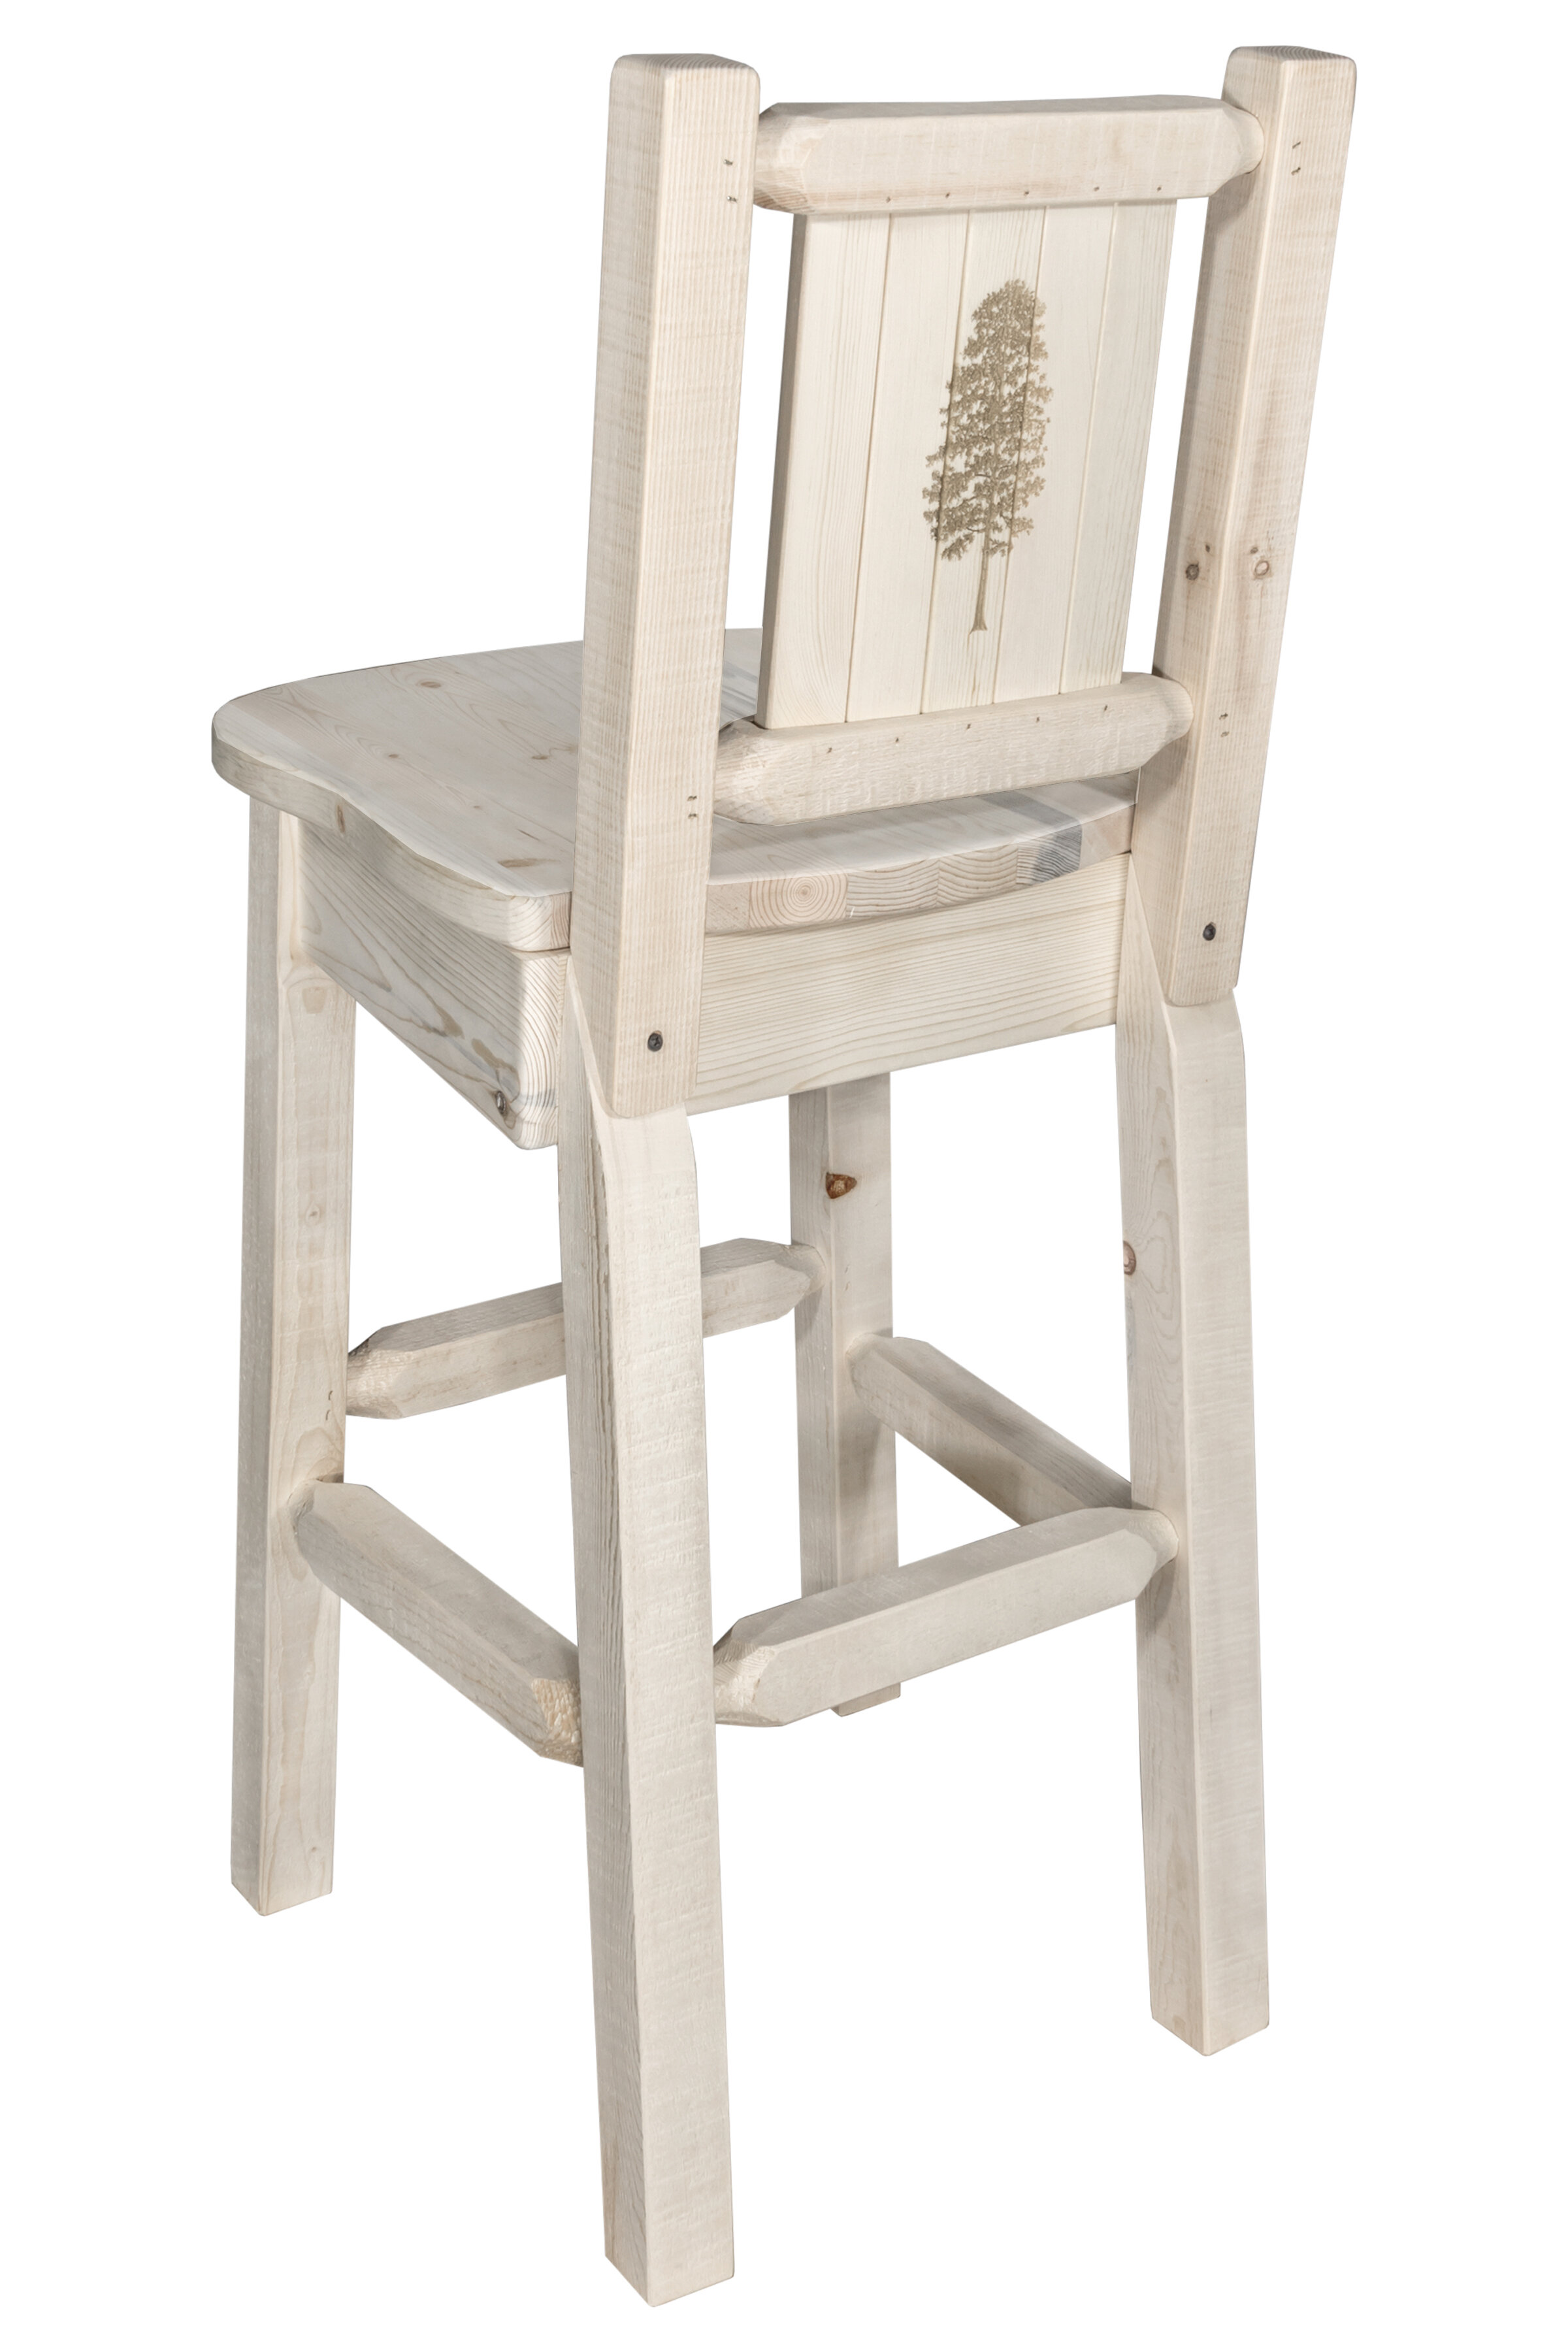 Mistana Haleigh 30 Barstool With Back And Laser Engraved Pine Tree